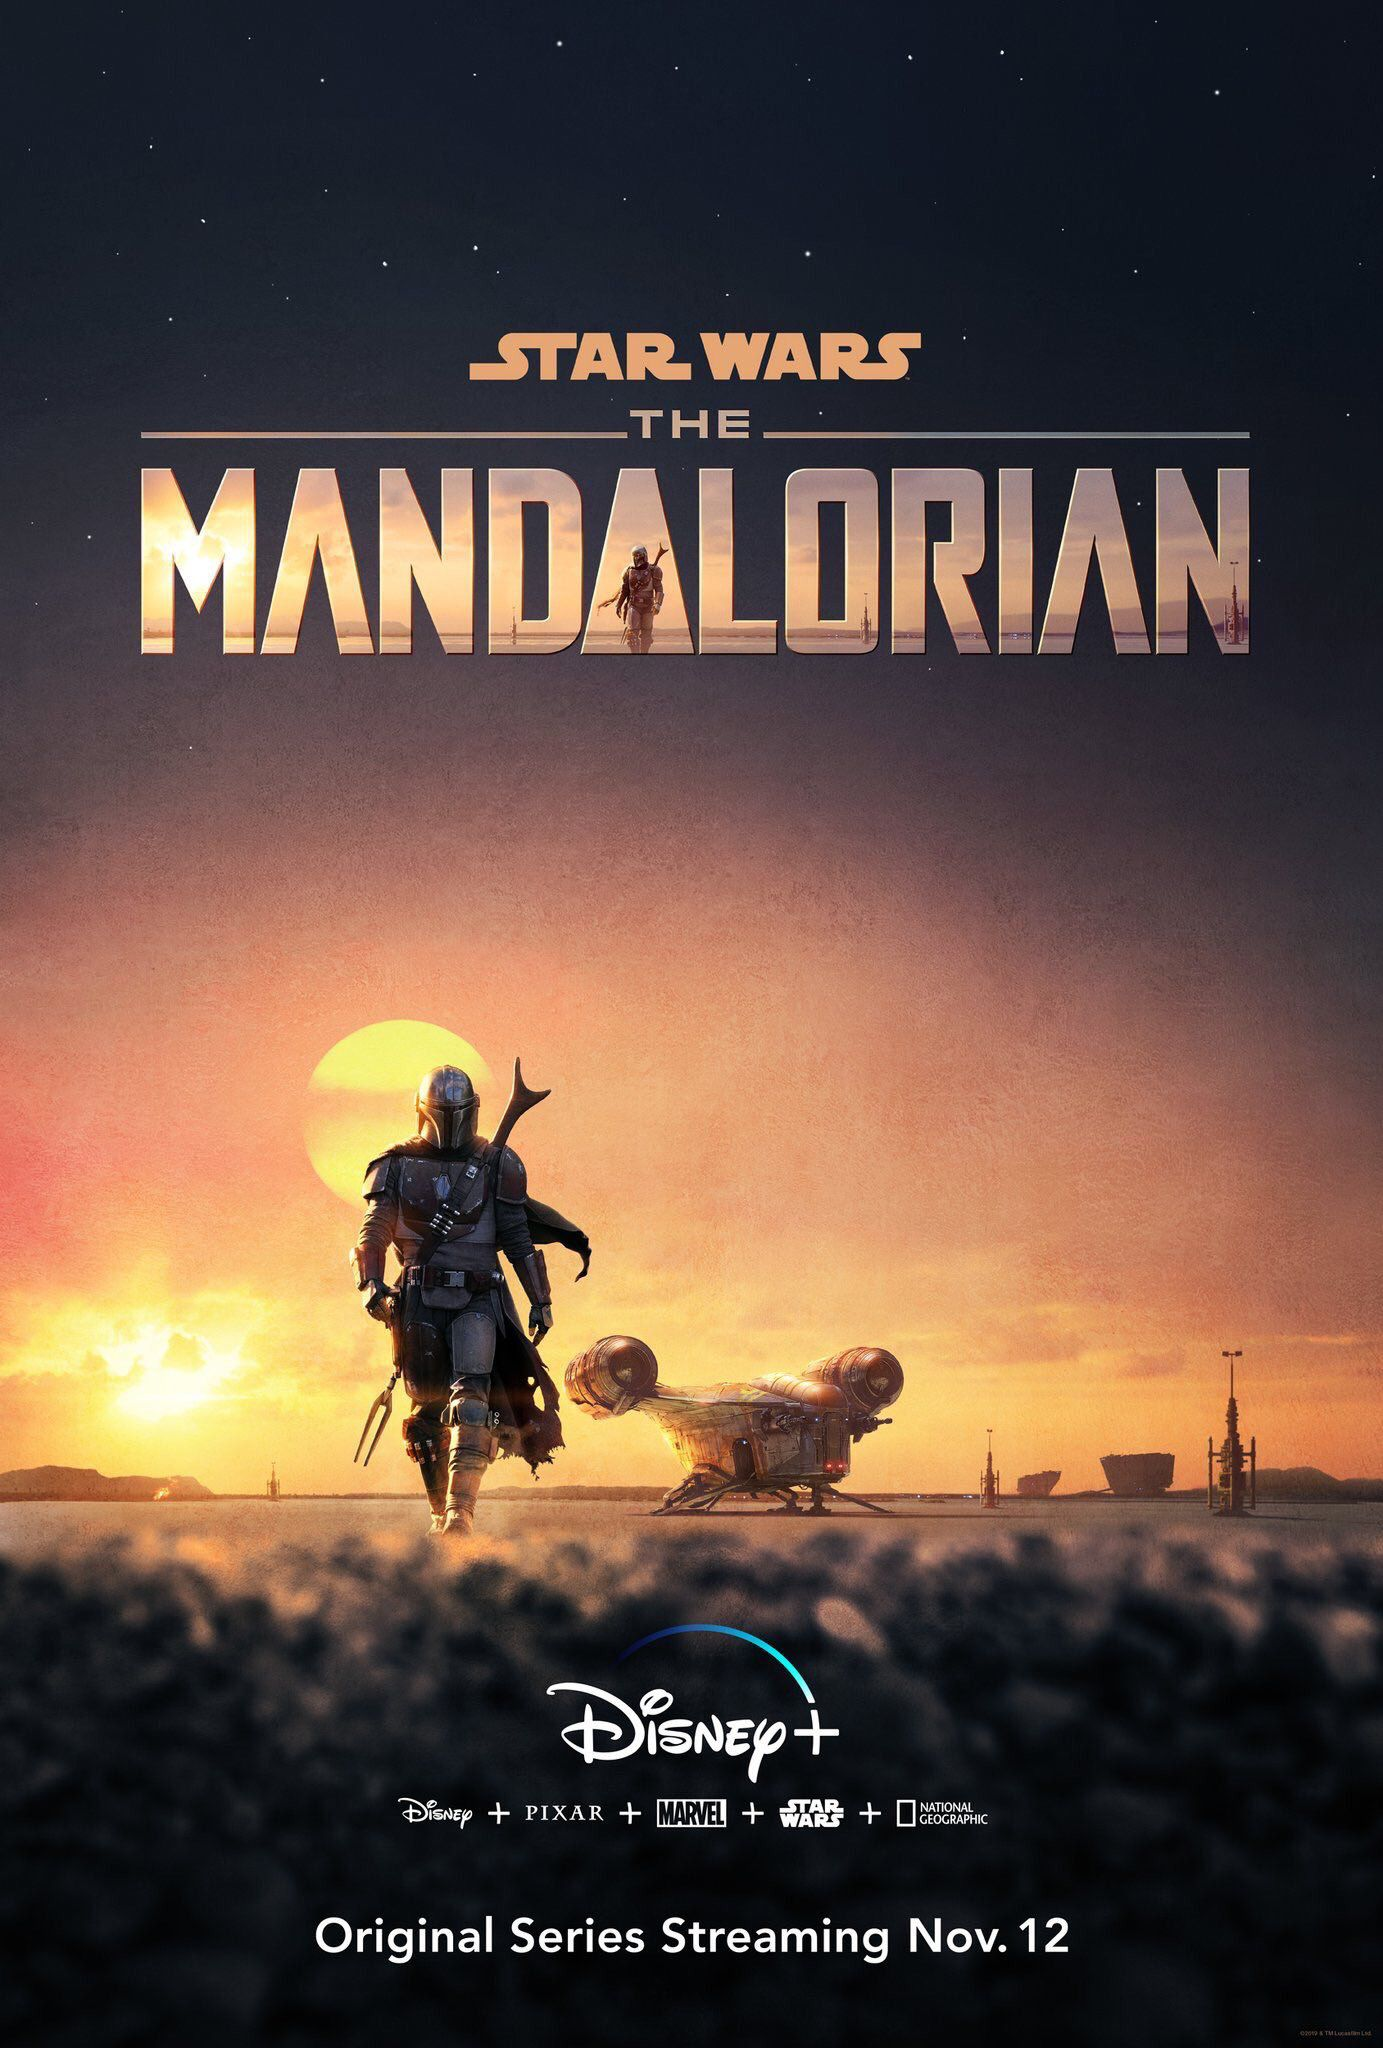 The Mandalorian - Série (2019) streaming VF gratuit complet